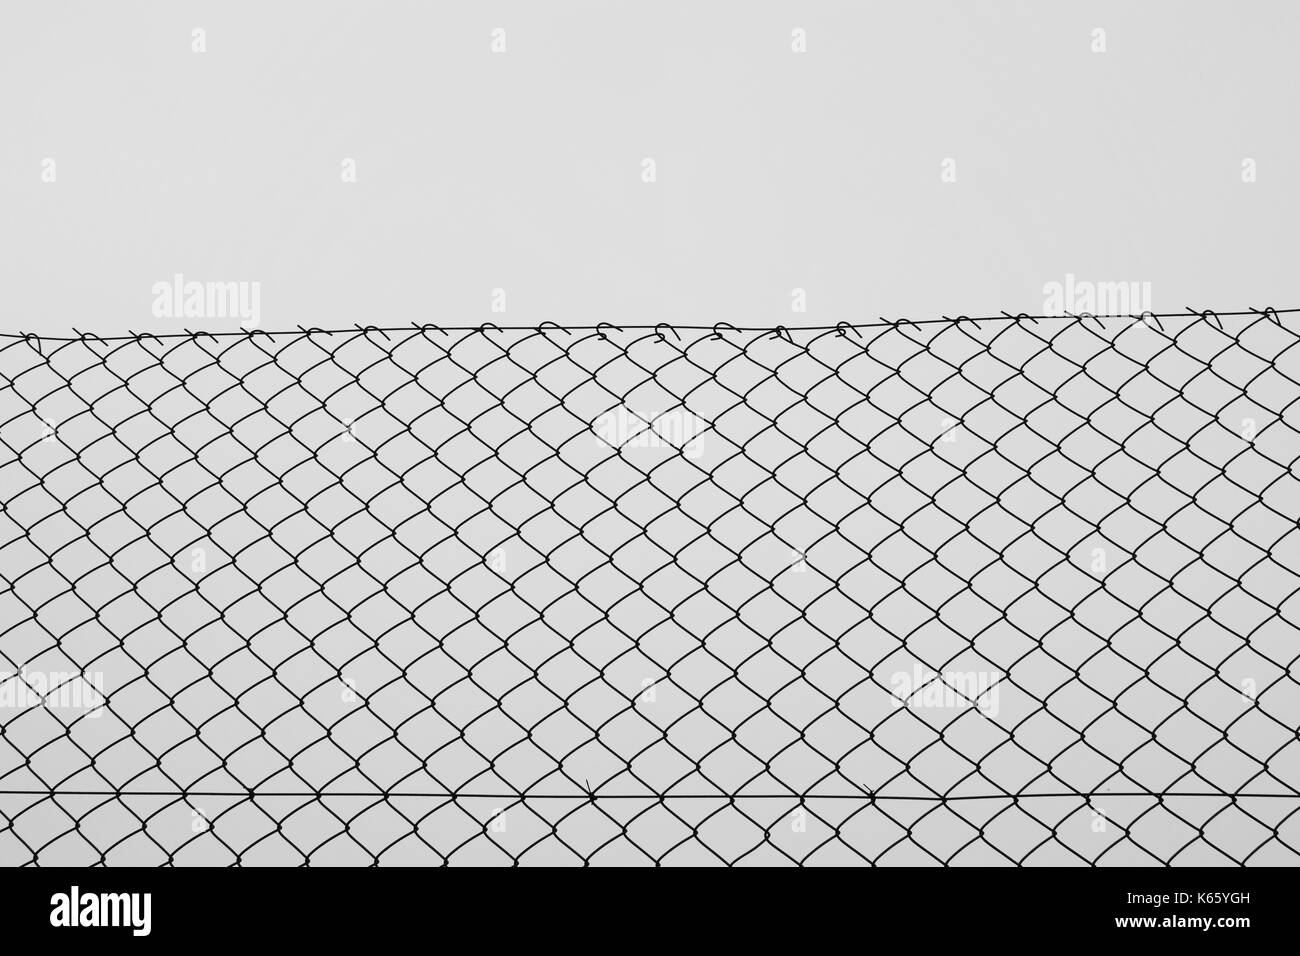 Diamond Mesh Imágenes De Stock & Diamond Mesh Fotos De Stock - Alamy